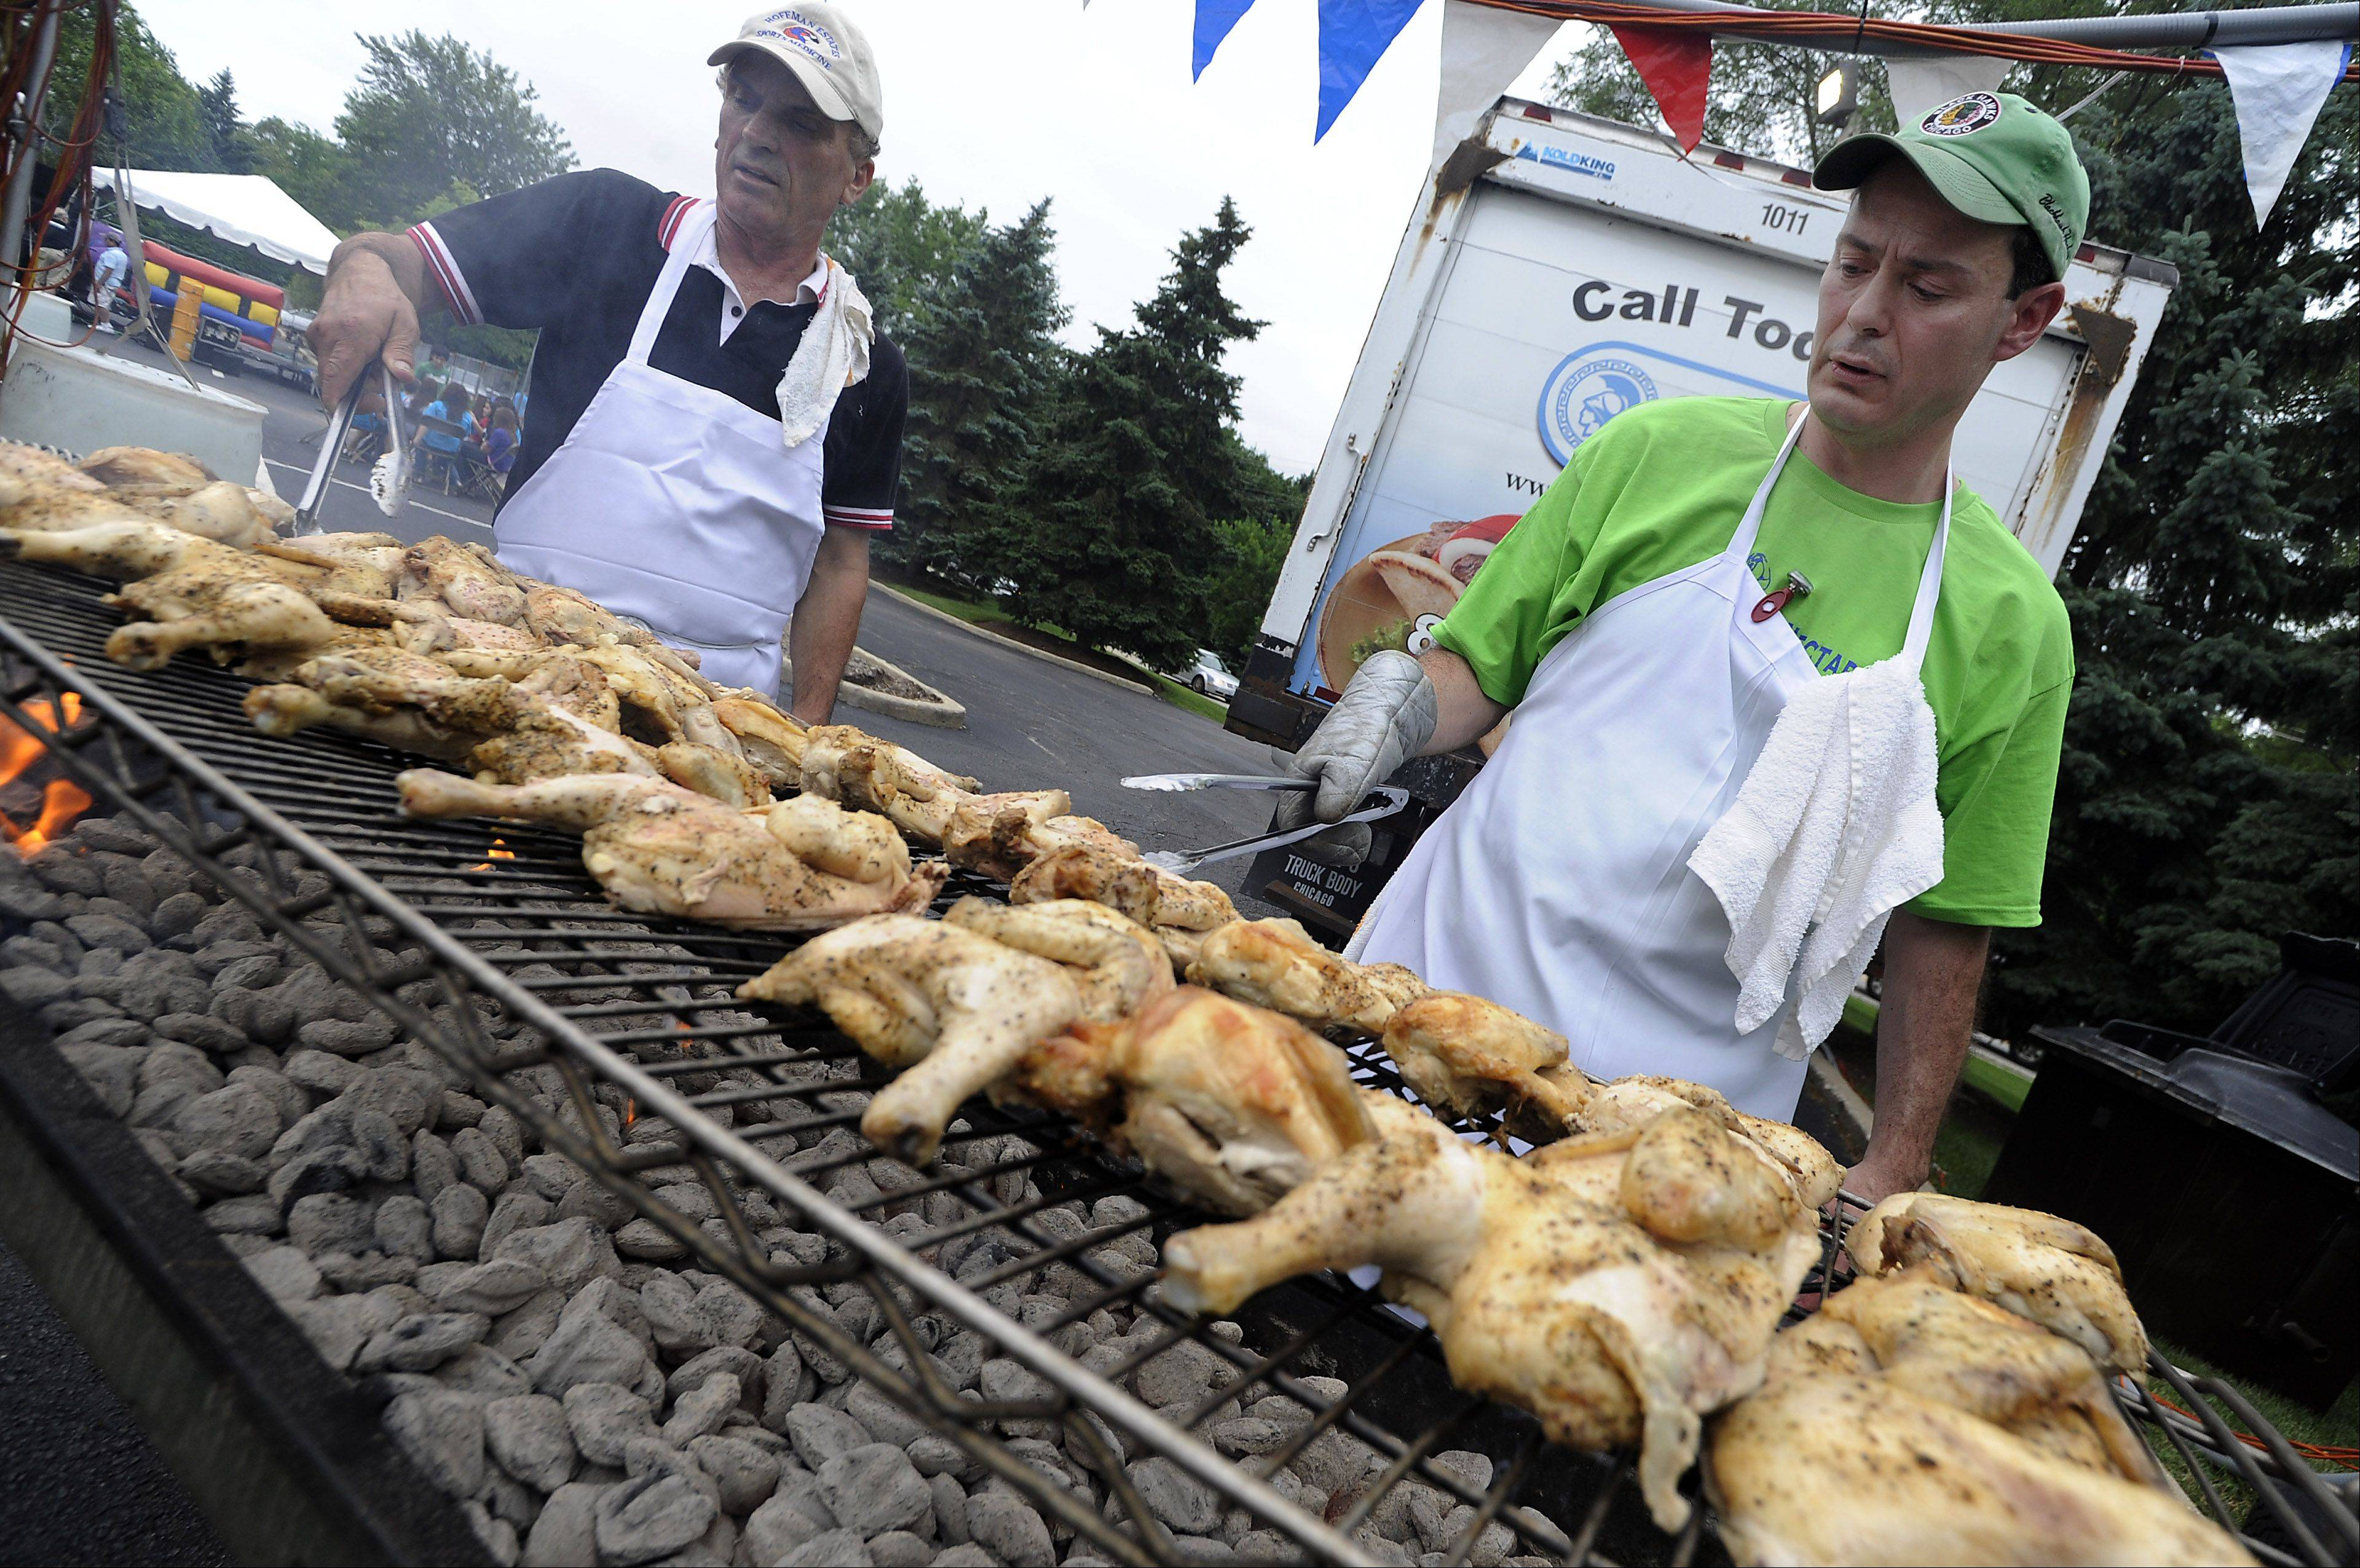 Peter Phillips of Schaumburg and John Giannopoulos of Hanover Park cook up St. Nectarios of Palatine's famous chicken at last year's Greek Fest.